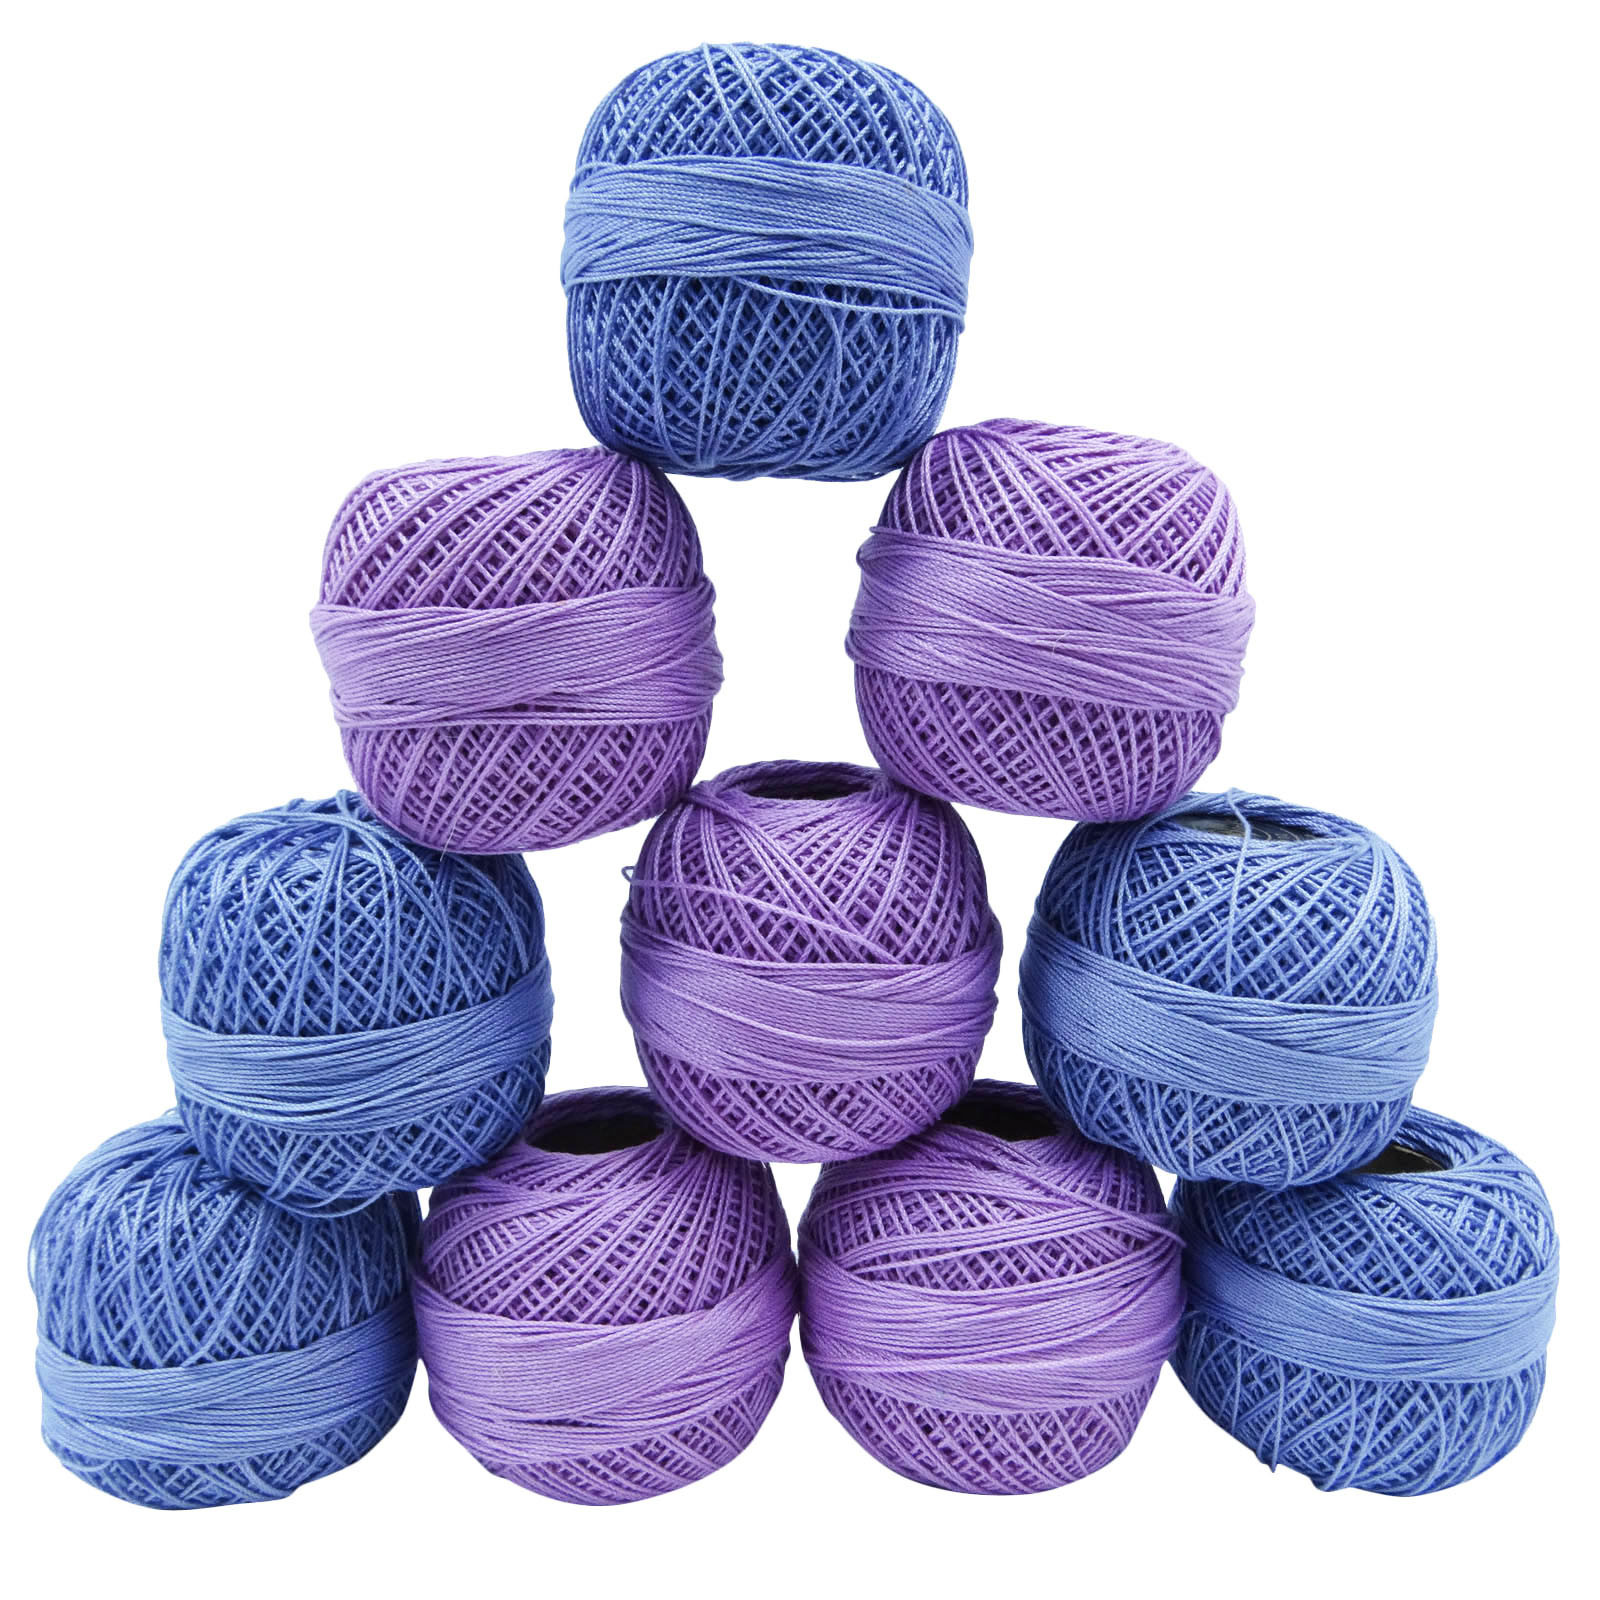 Crochet Cotton Beautiful Indian Crochet Cotton Yarn Embroidery Knitting Skein Of Contemporary 41 Ideas Crochet Cotton